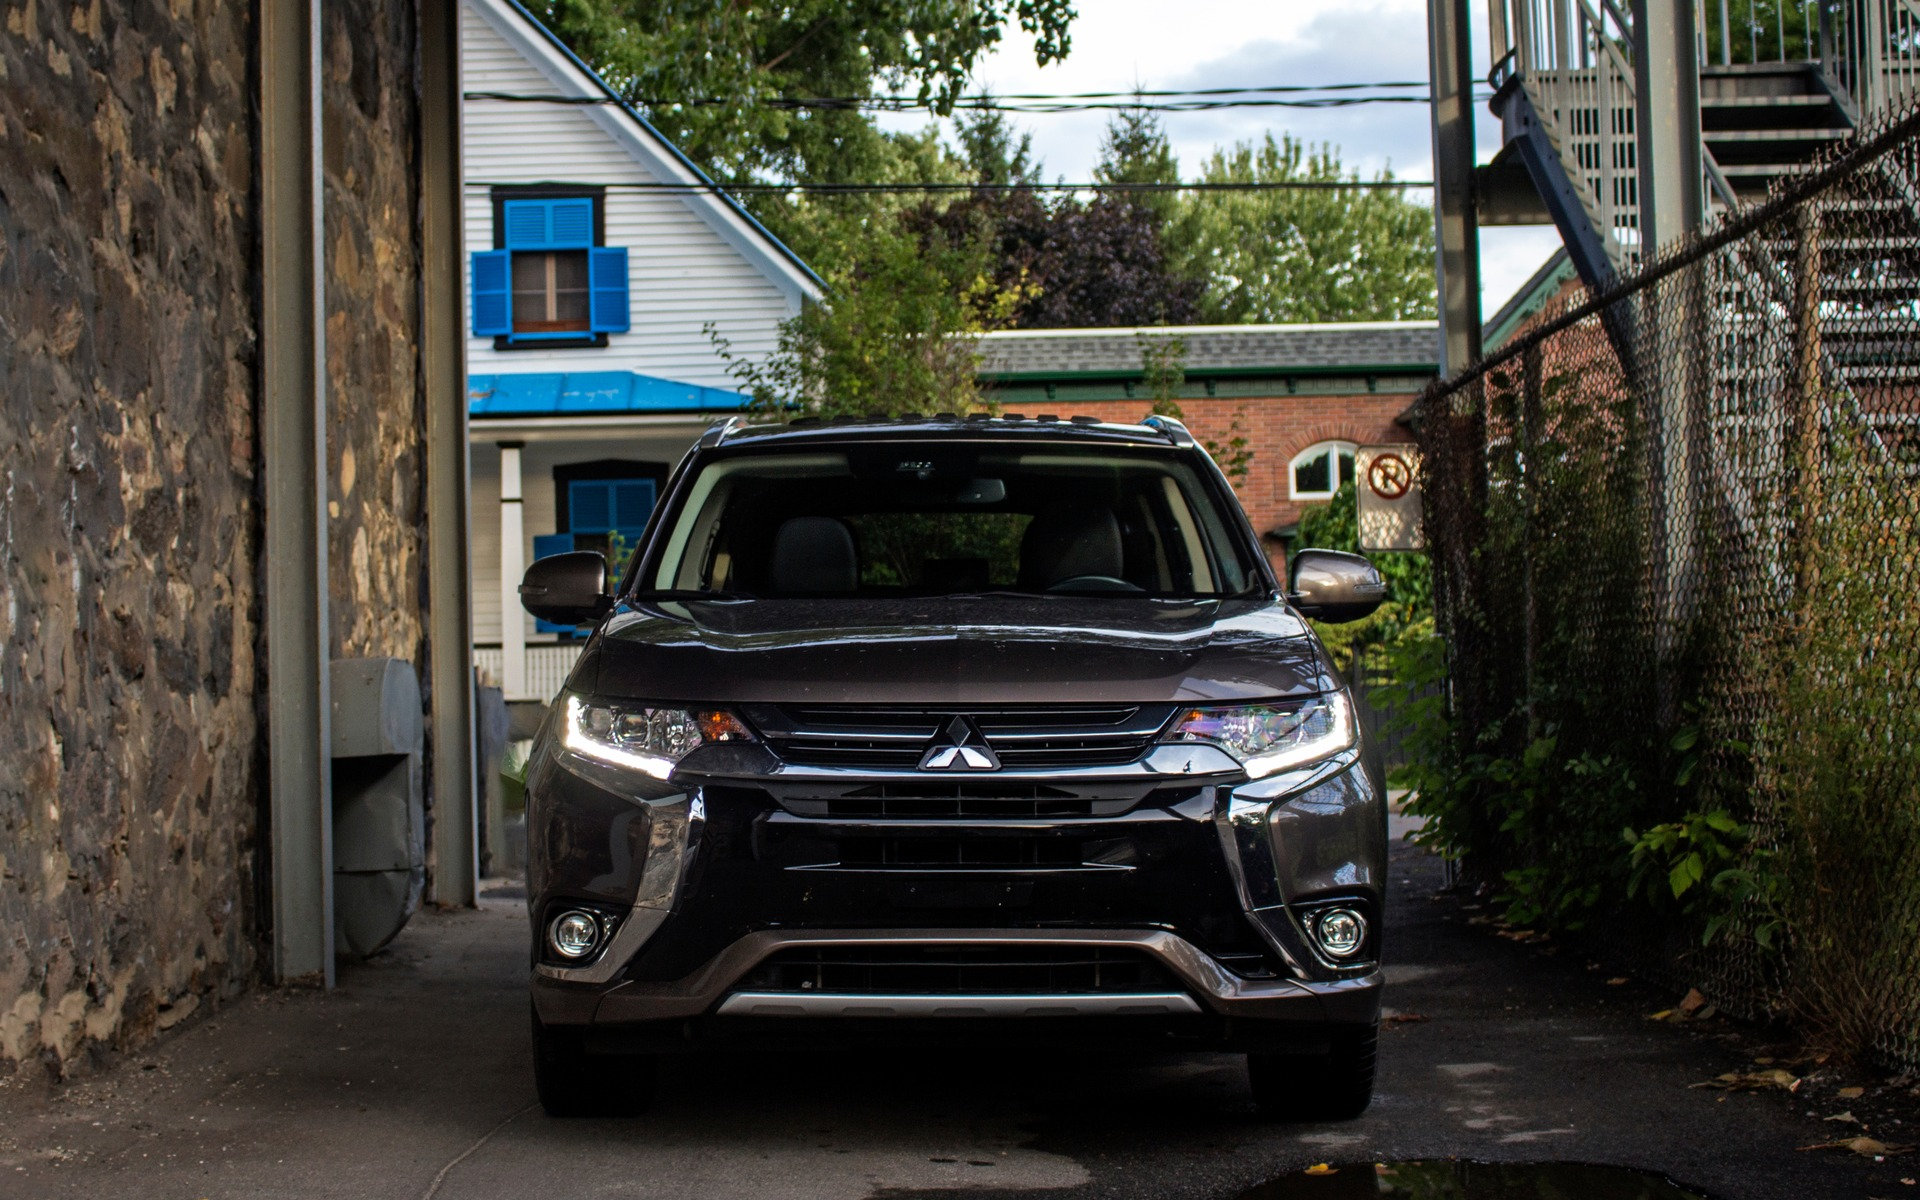 2018 Mitsubishi Outlander PHEV: Proving a Point - The Car Guide